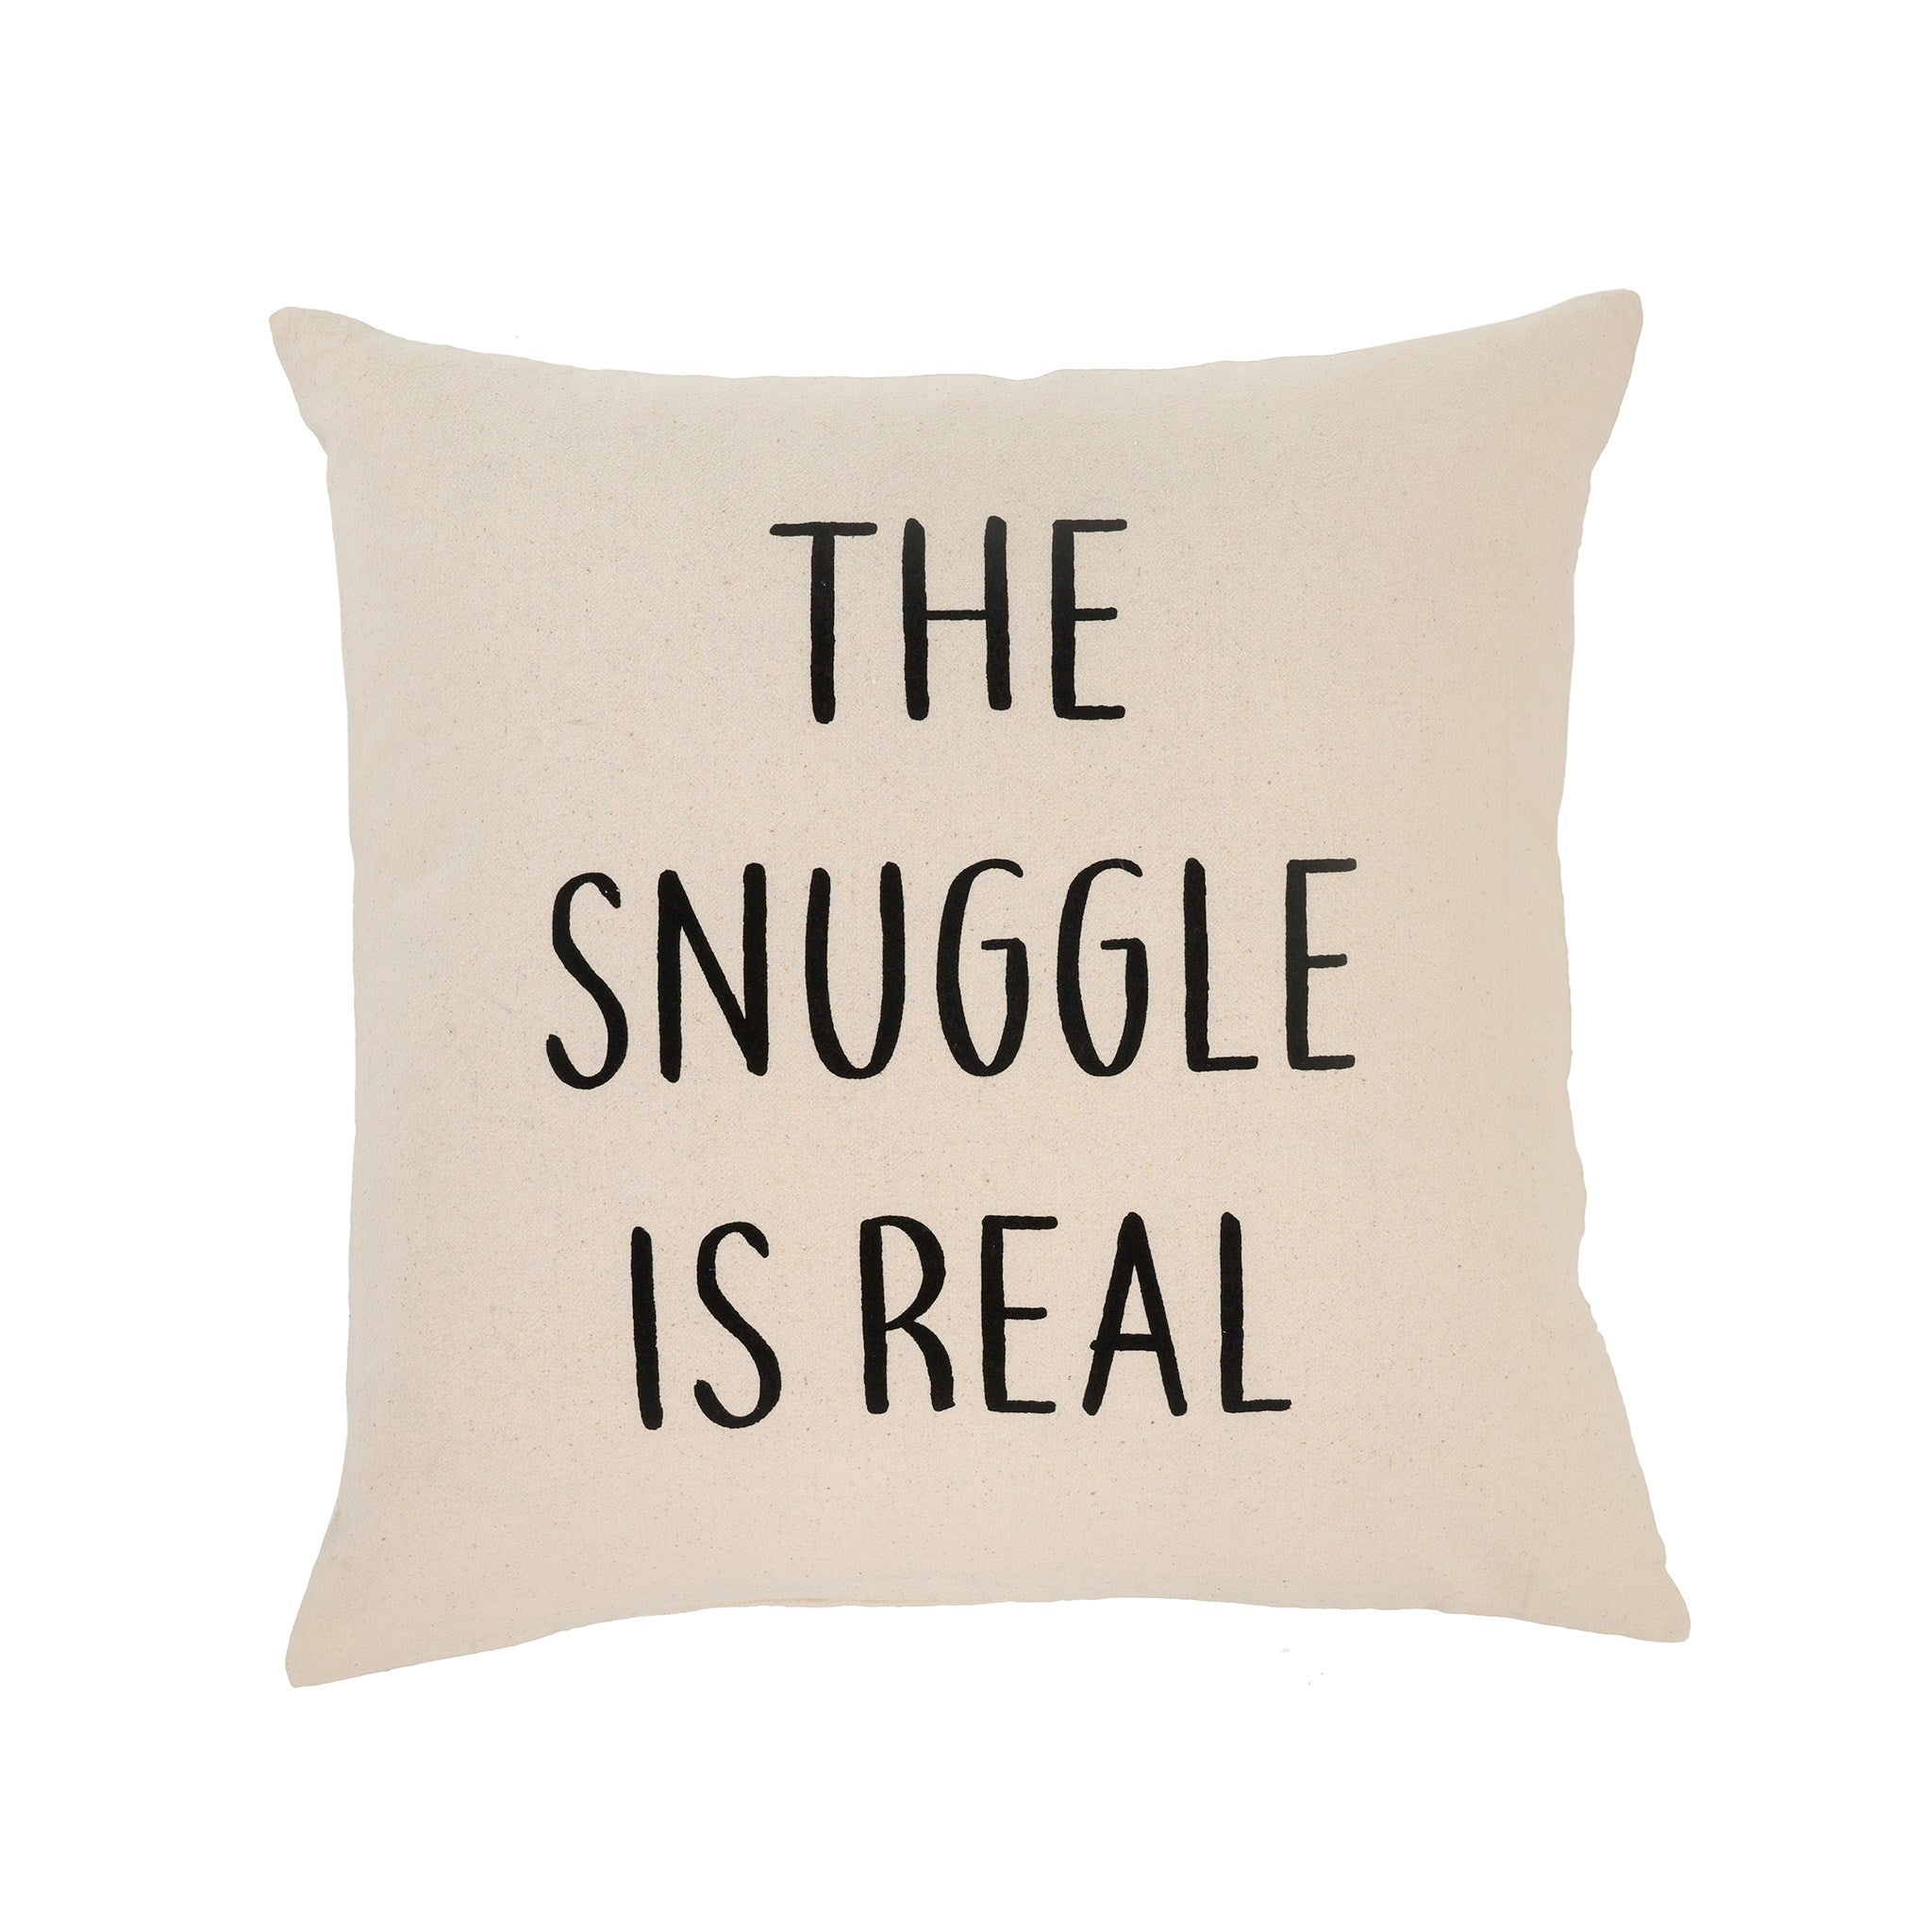 20x20 Snuggle Is Real Cushion